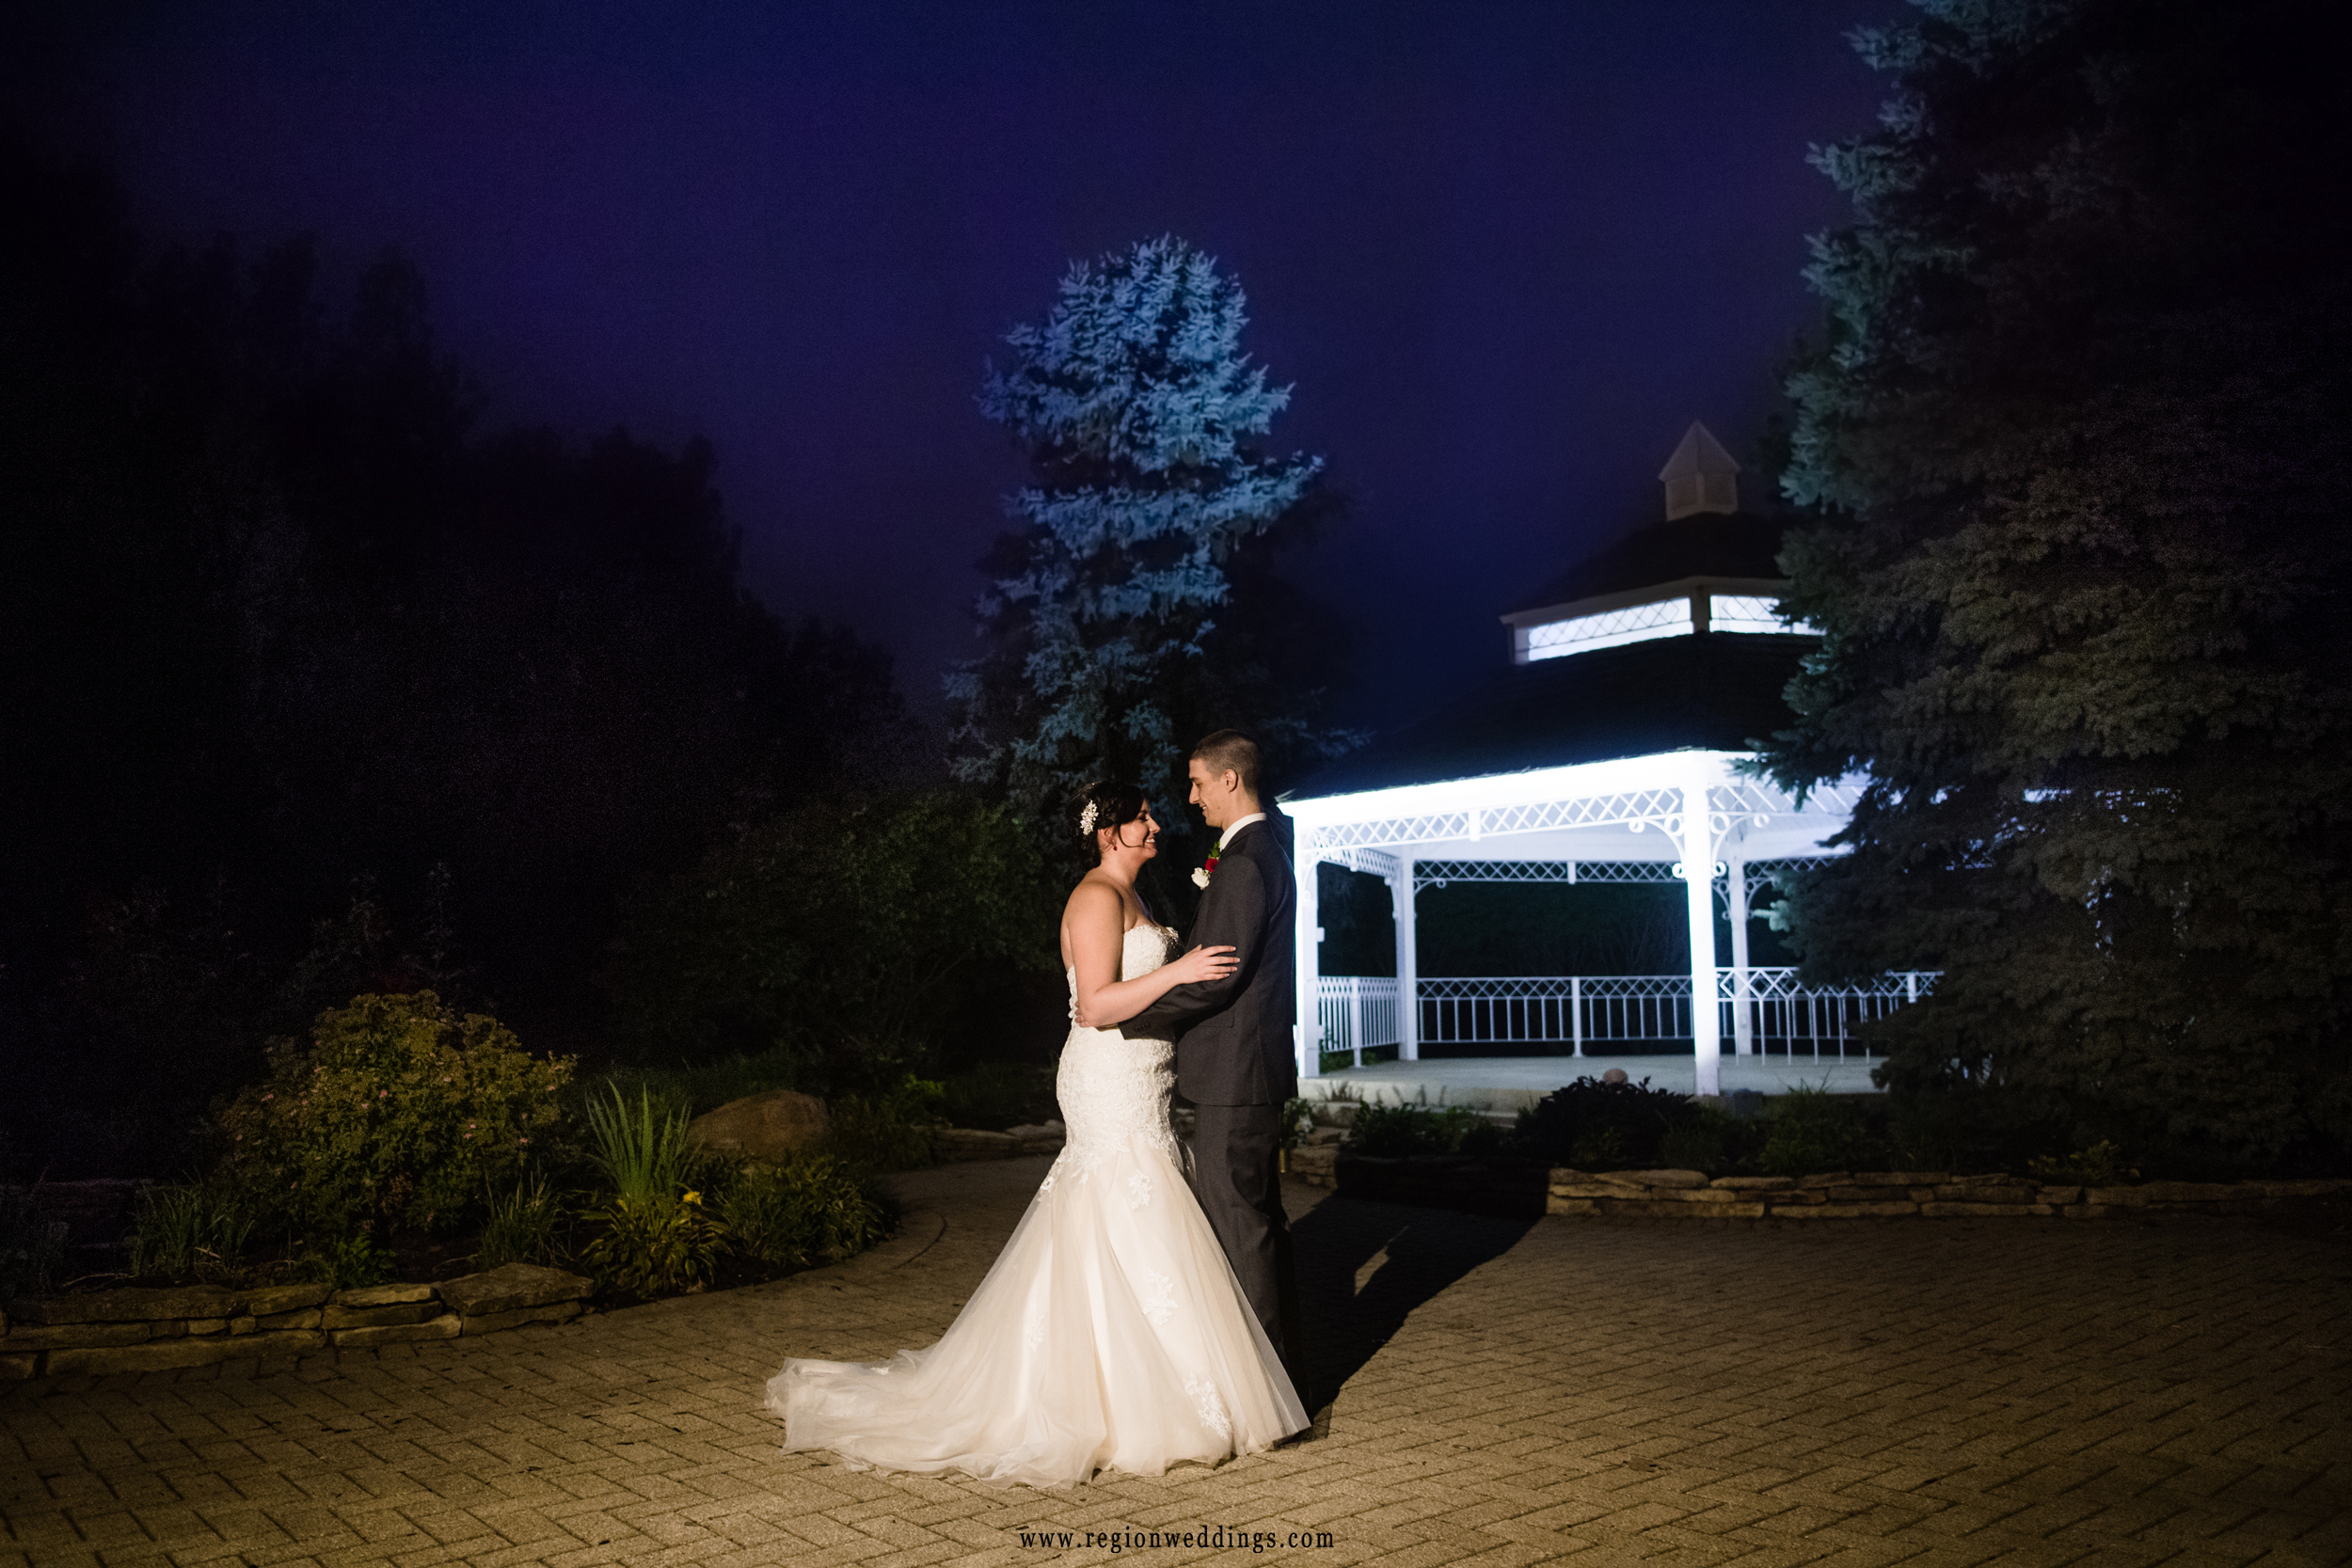 Night dance with the bride and groom outside by the gazebo.